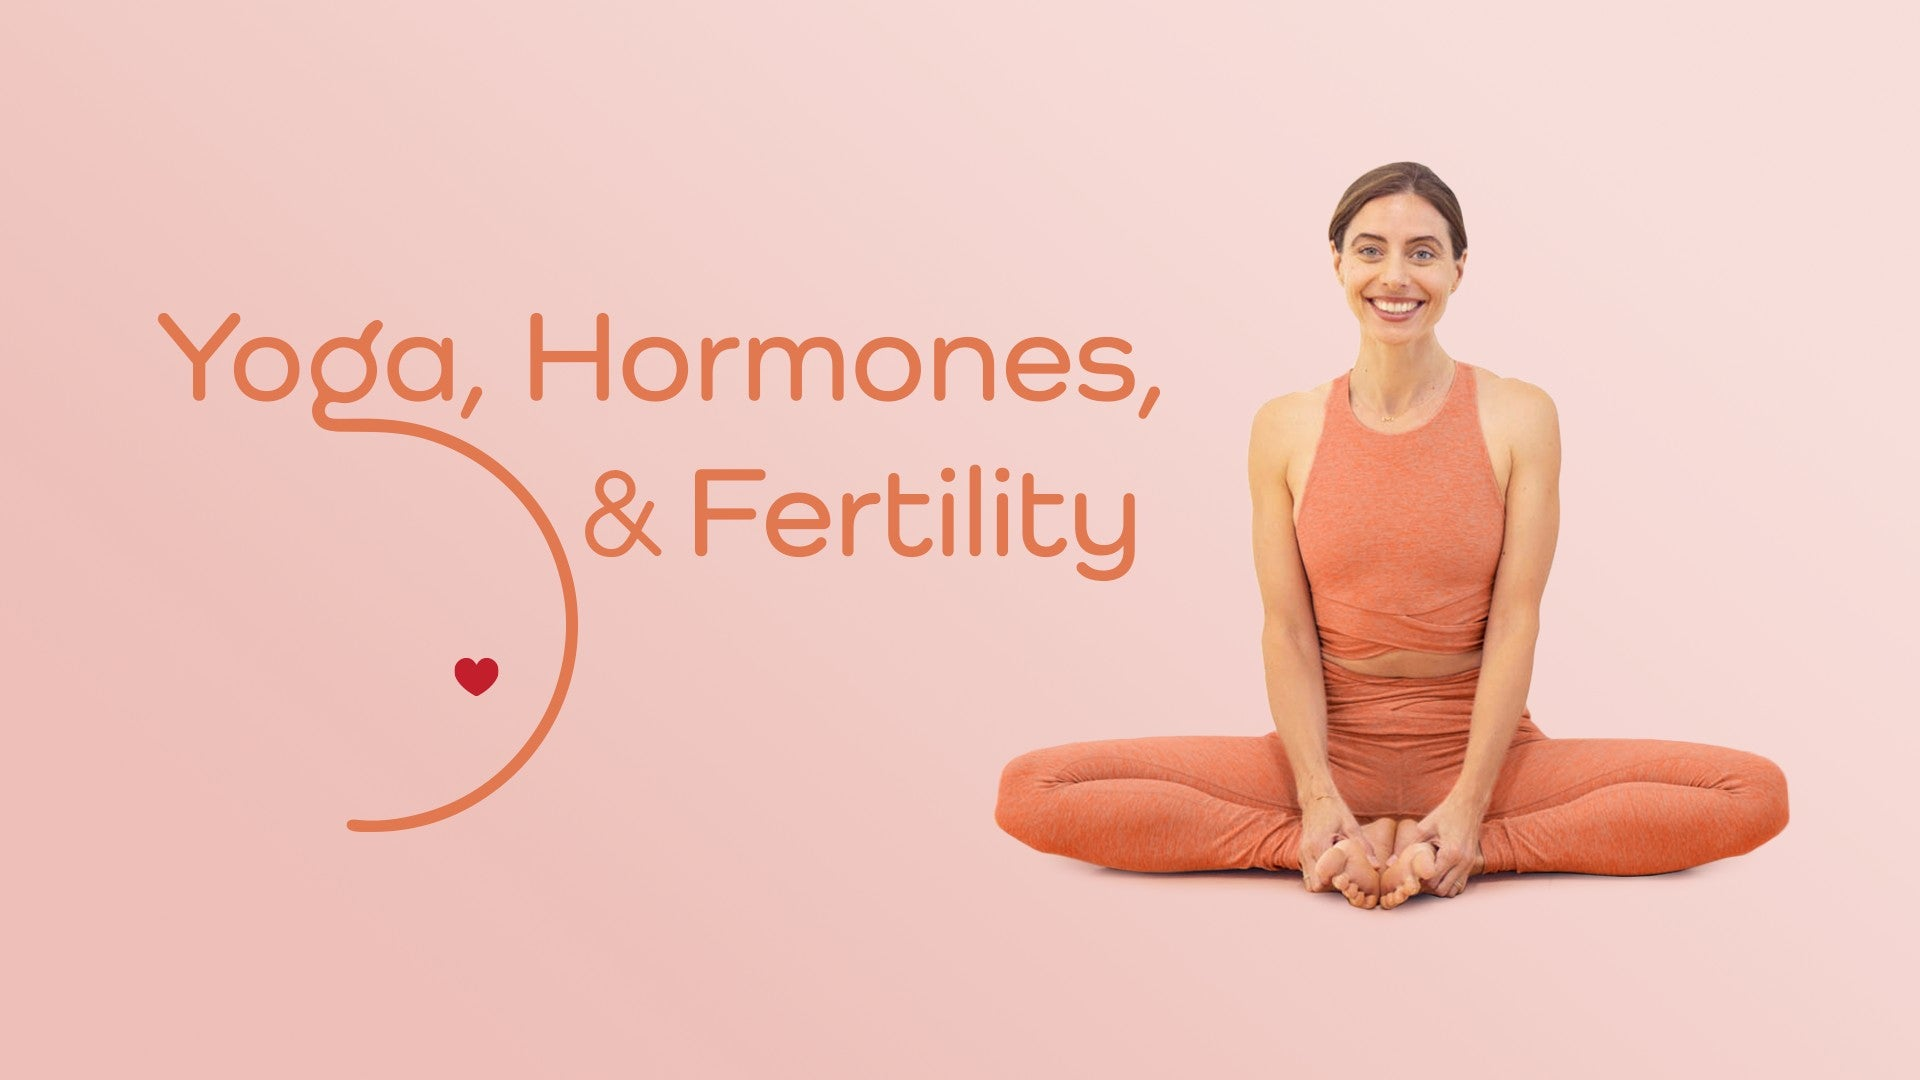 Yoga, Hormones, and Fertility Artwork